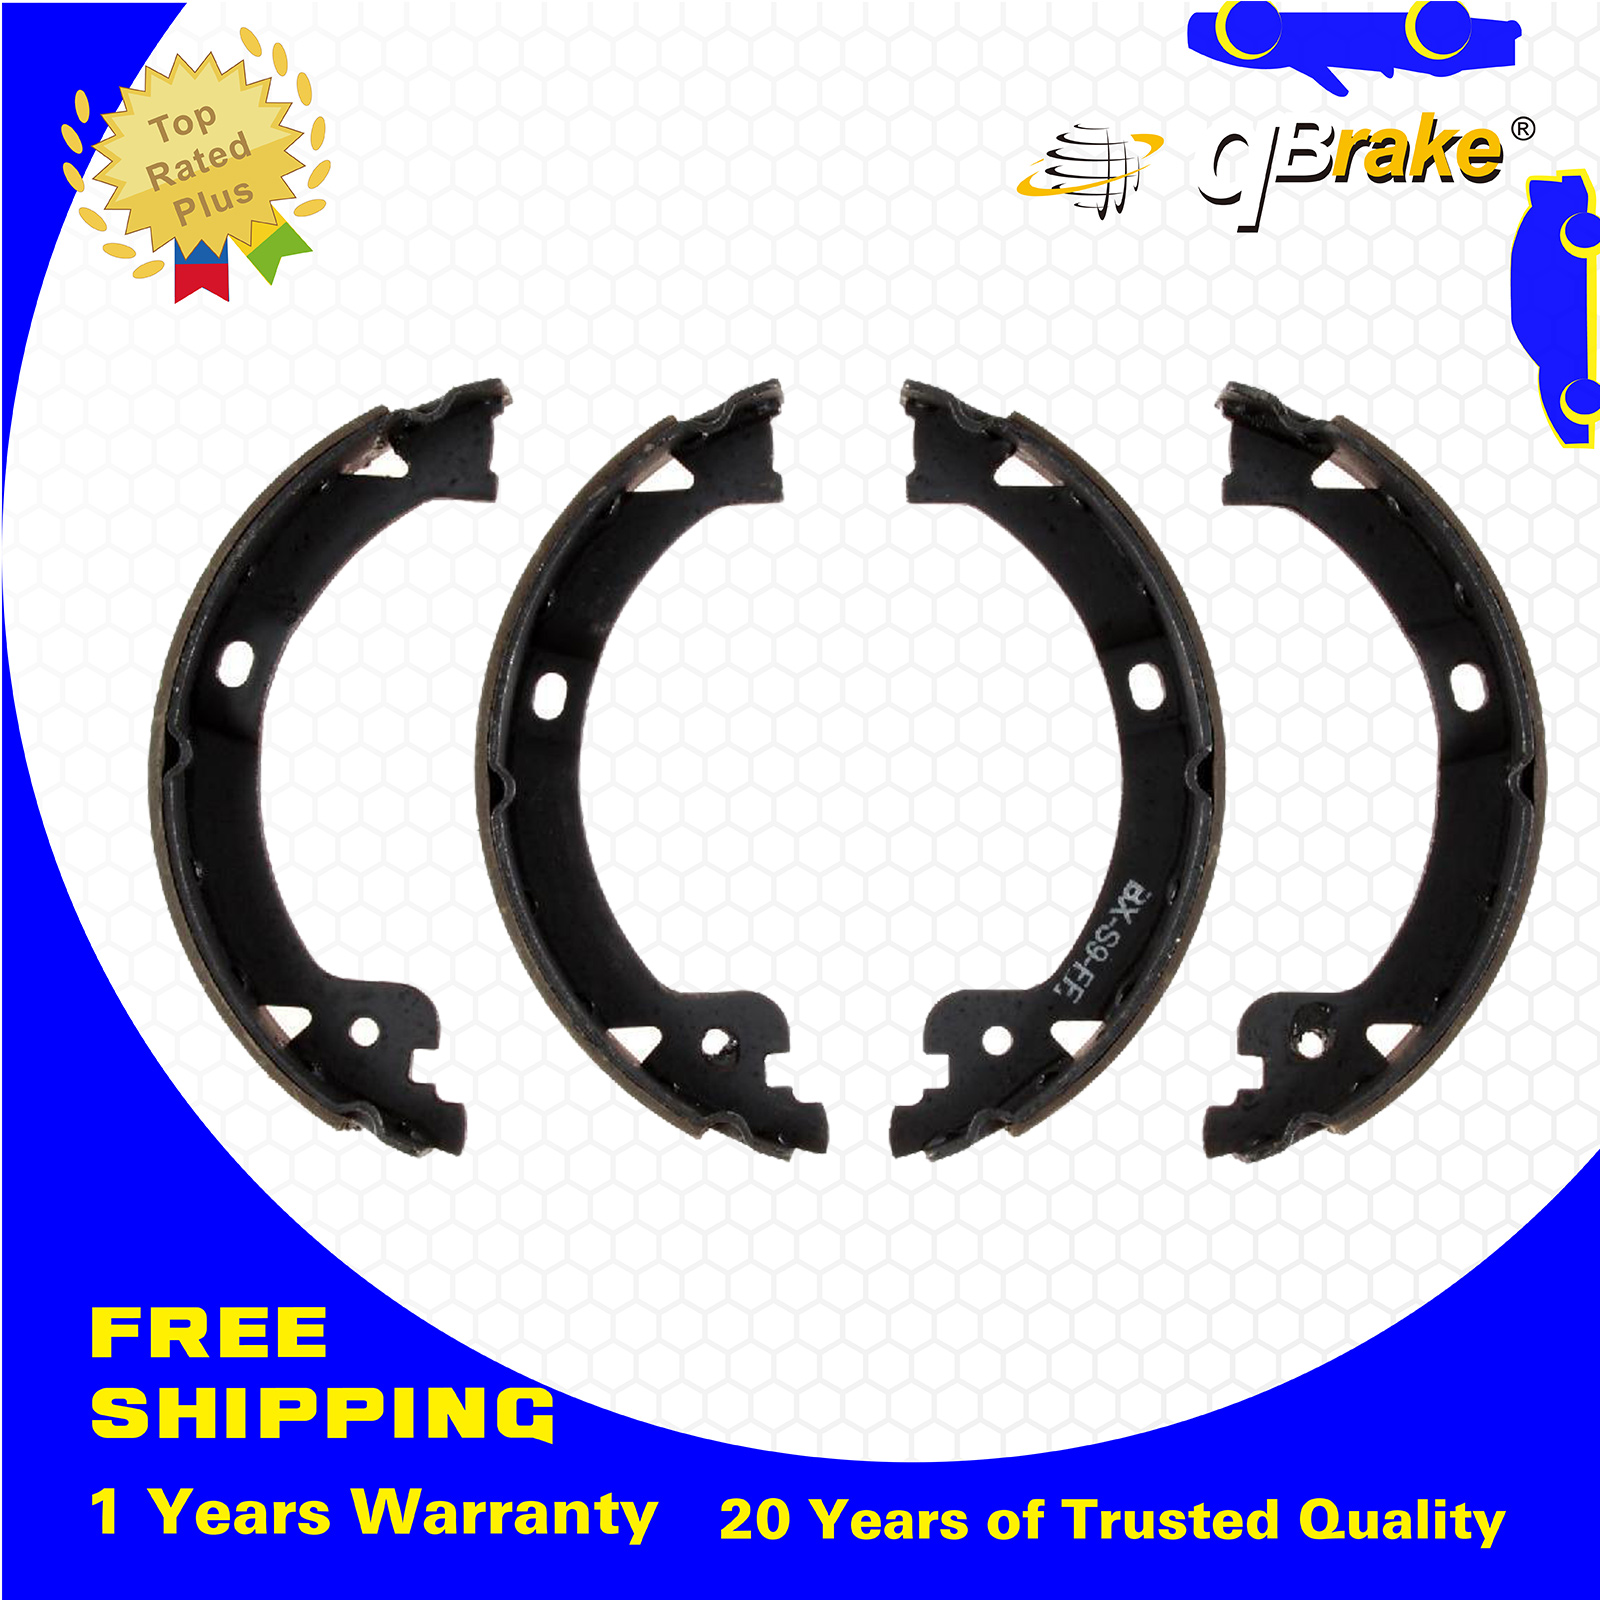 QBrake Rear Parking Brake Shoes S812 Fit 01-07 Chrysler